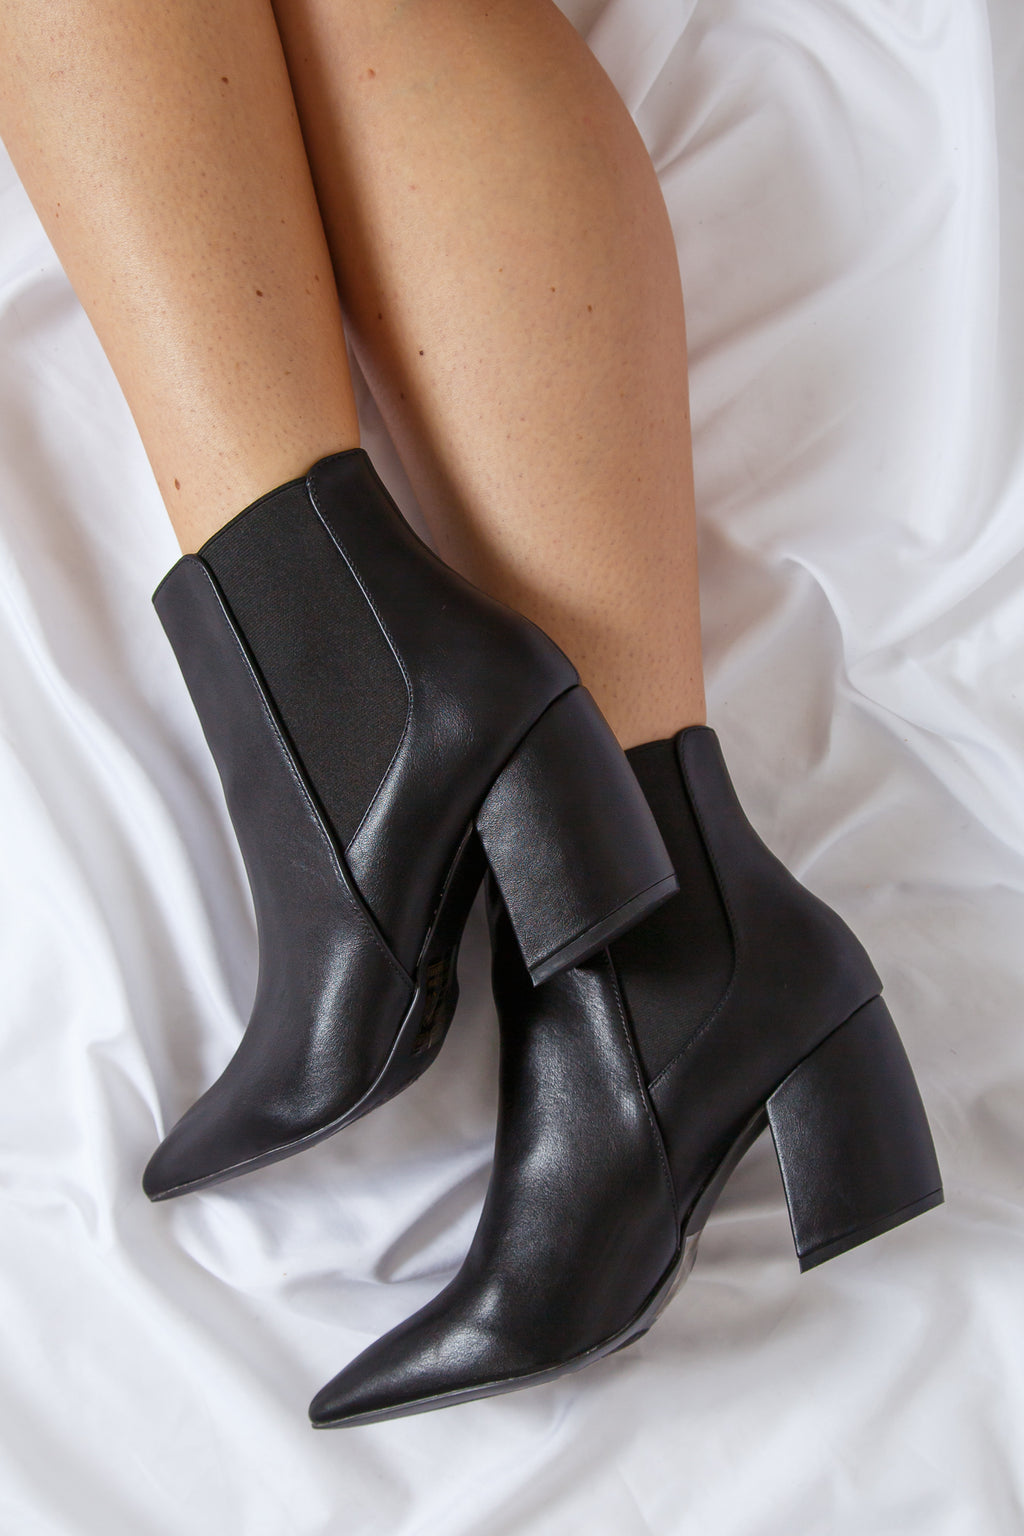 Milky Way Bootie Black